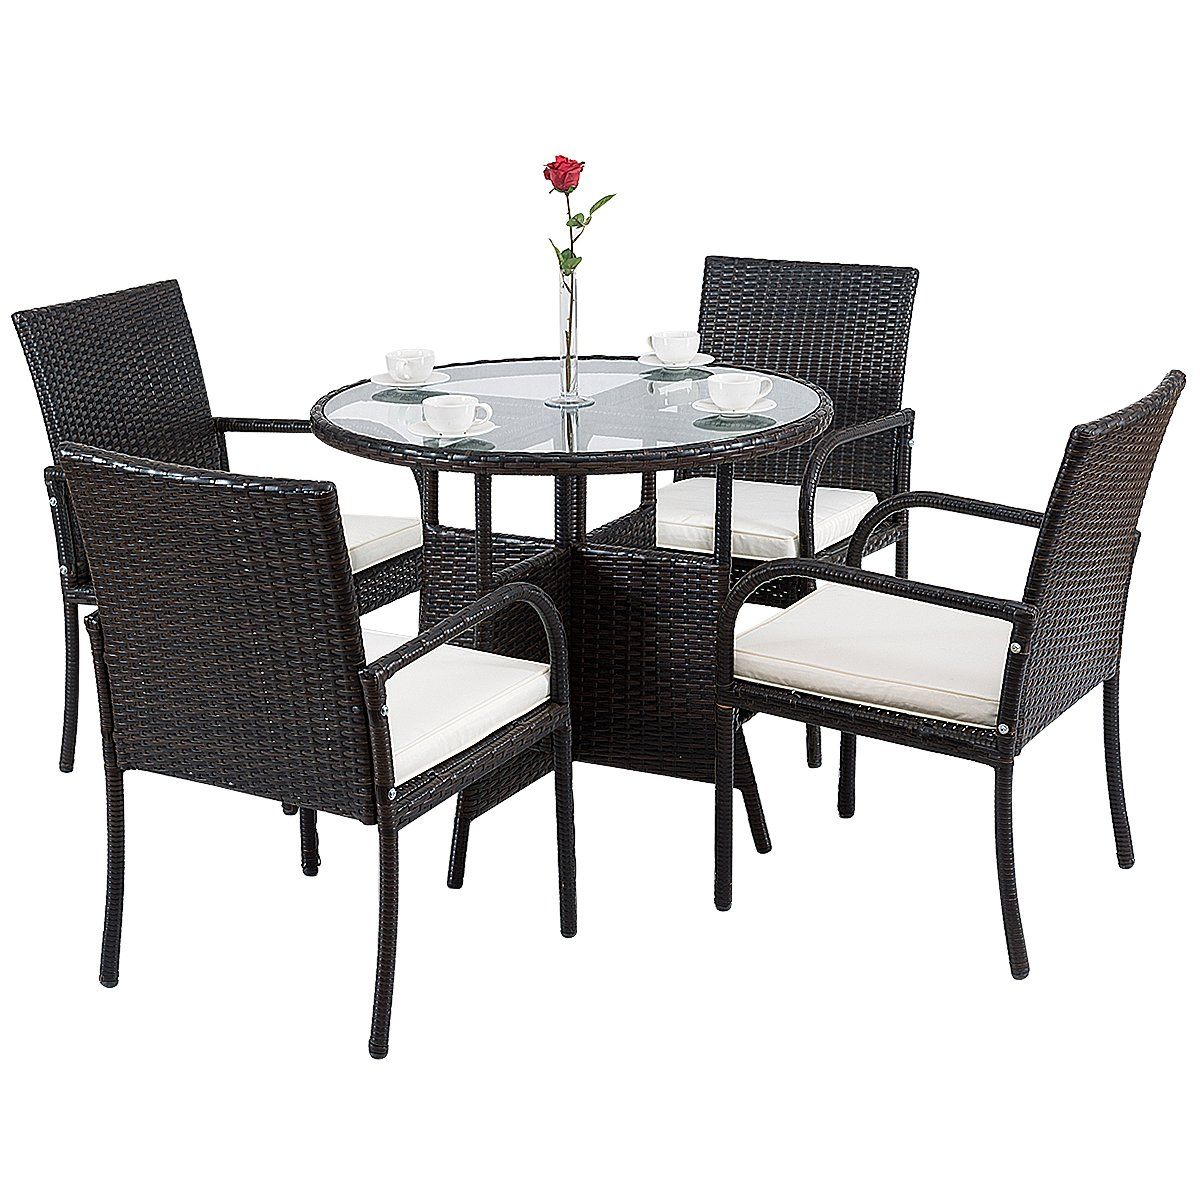 Tangkula 5 Pcs Patio Dining Set Outdoor Wicker Rattan Table And